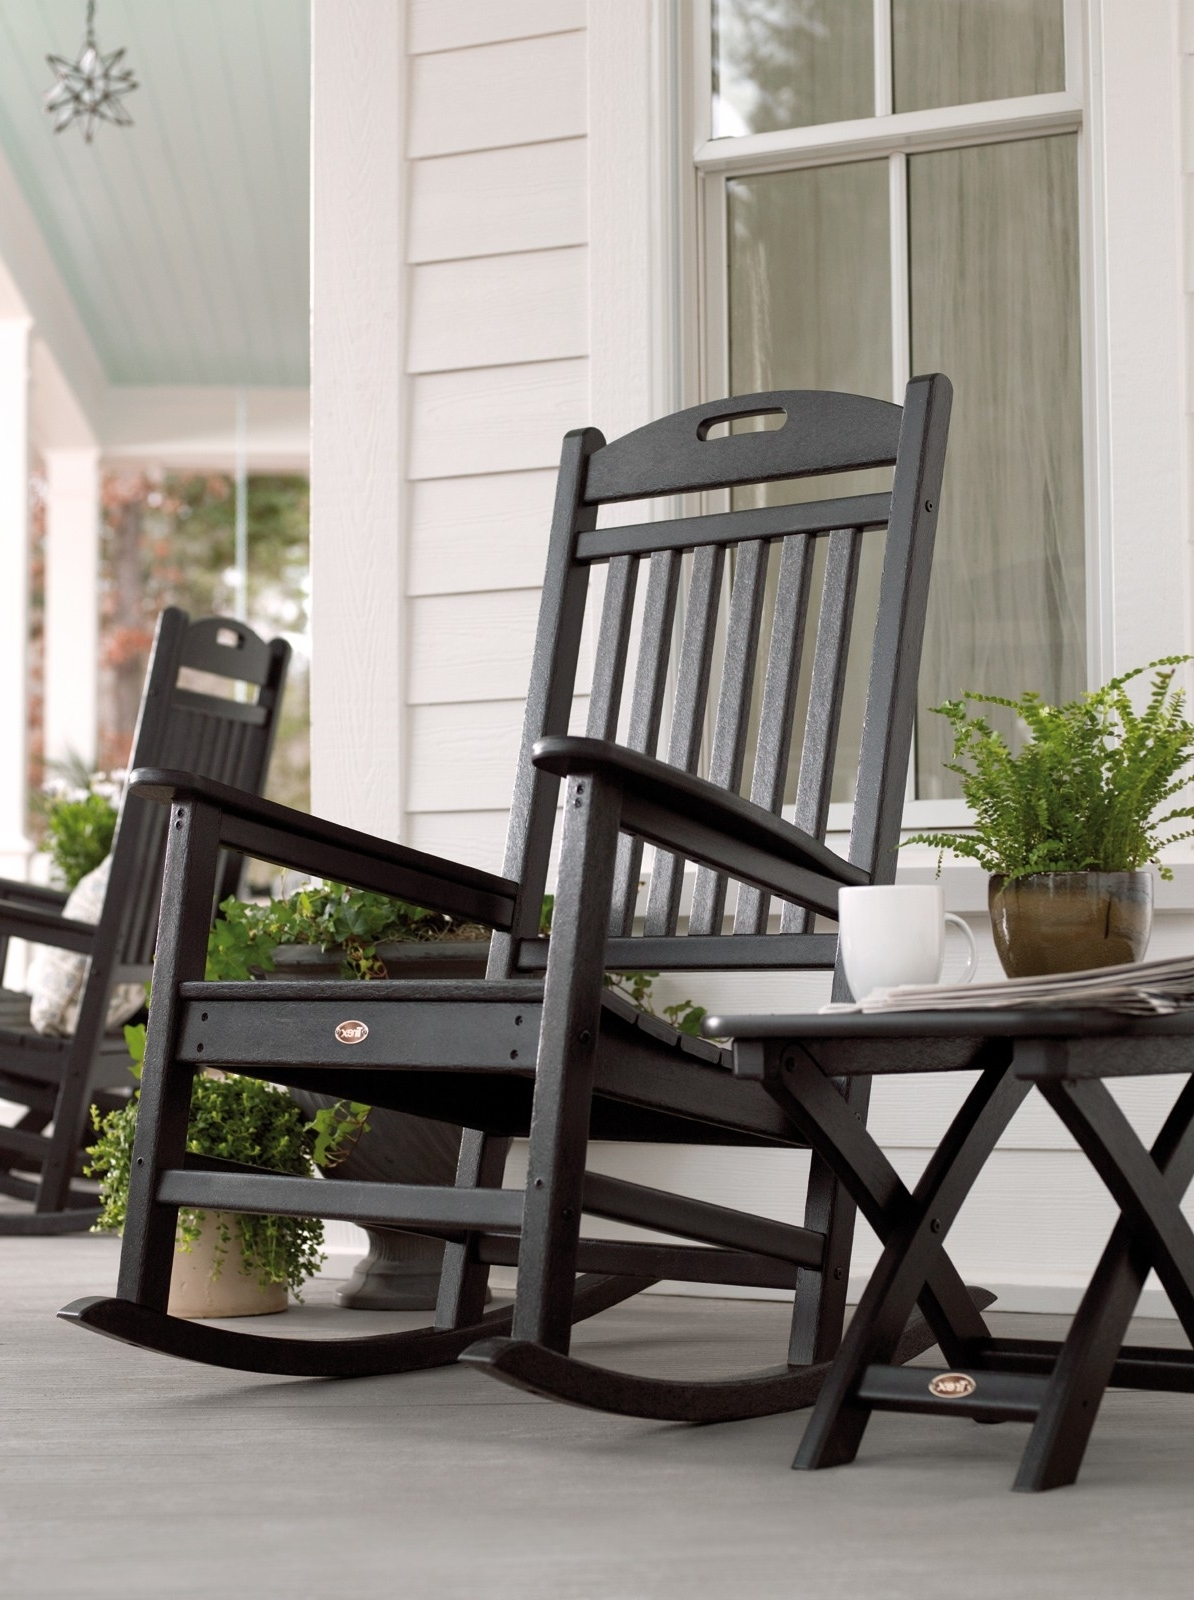 2018 Patio & Garden : Outdoor Rocking Chair Seat Cushions Outdoor Rocking Pertaining To Outside Rocking Chair Sets (View 1 of 20)